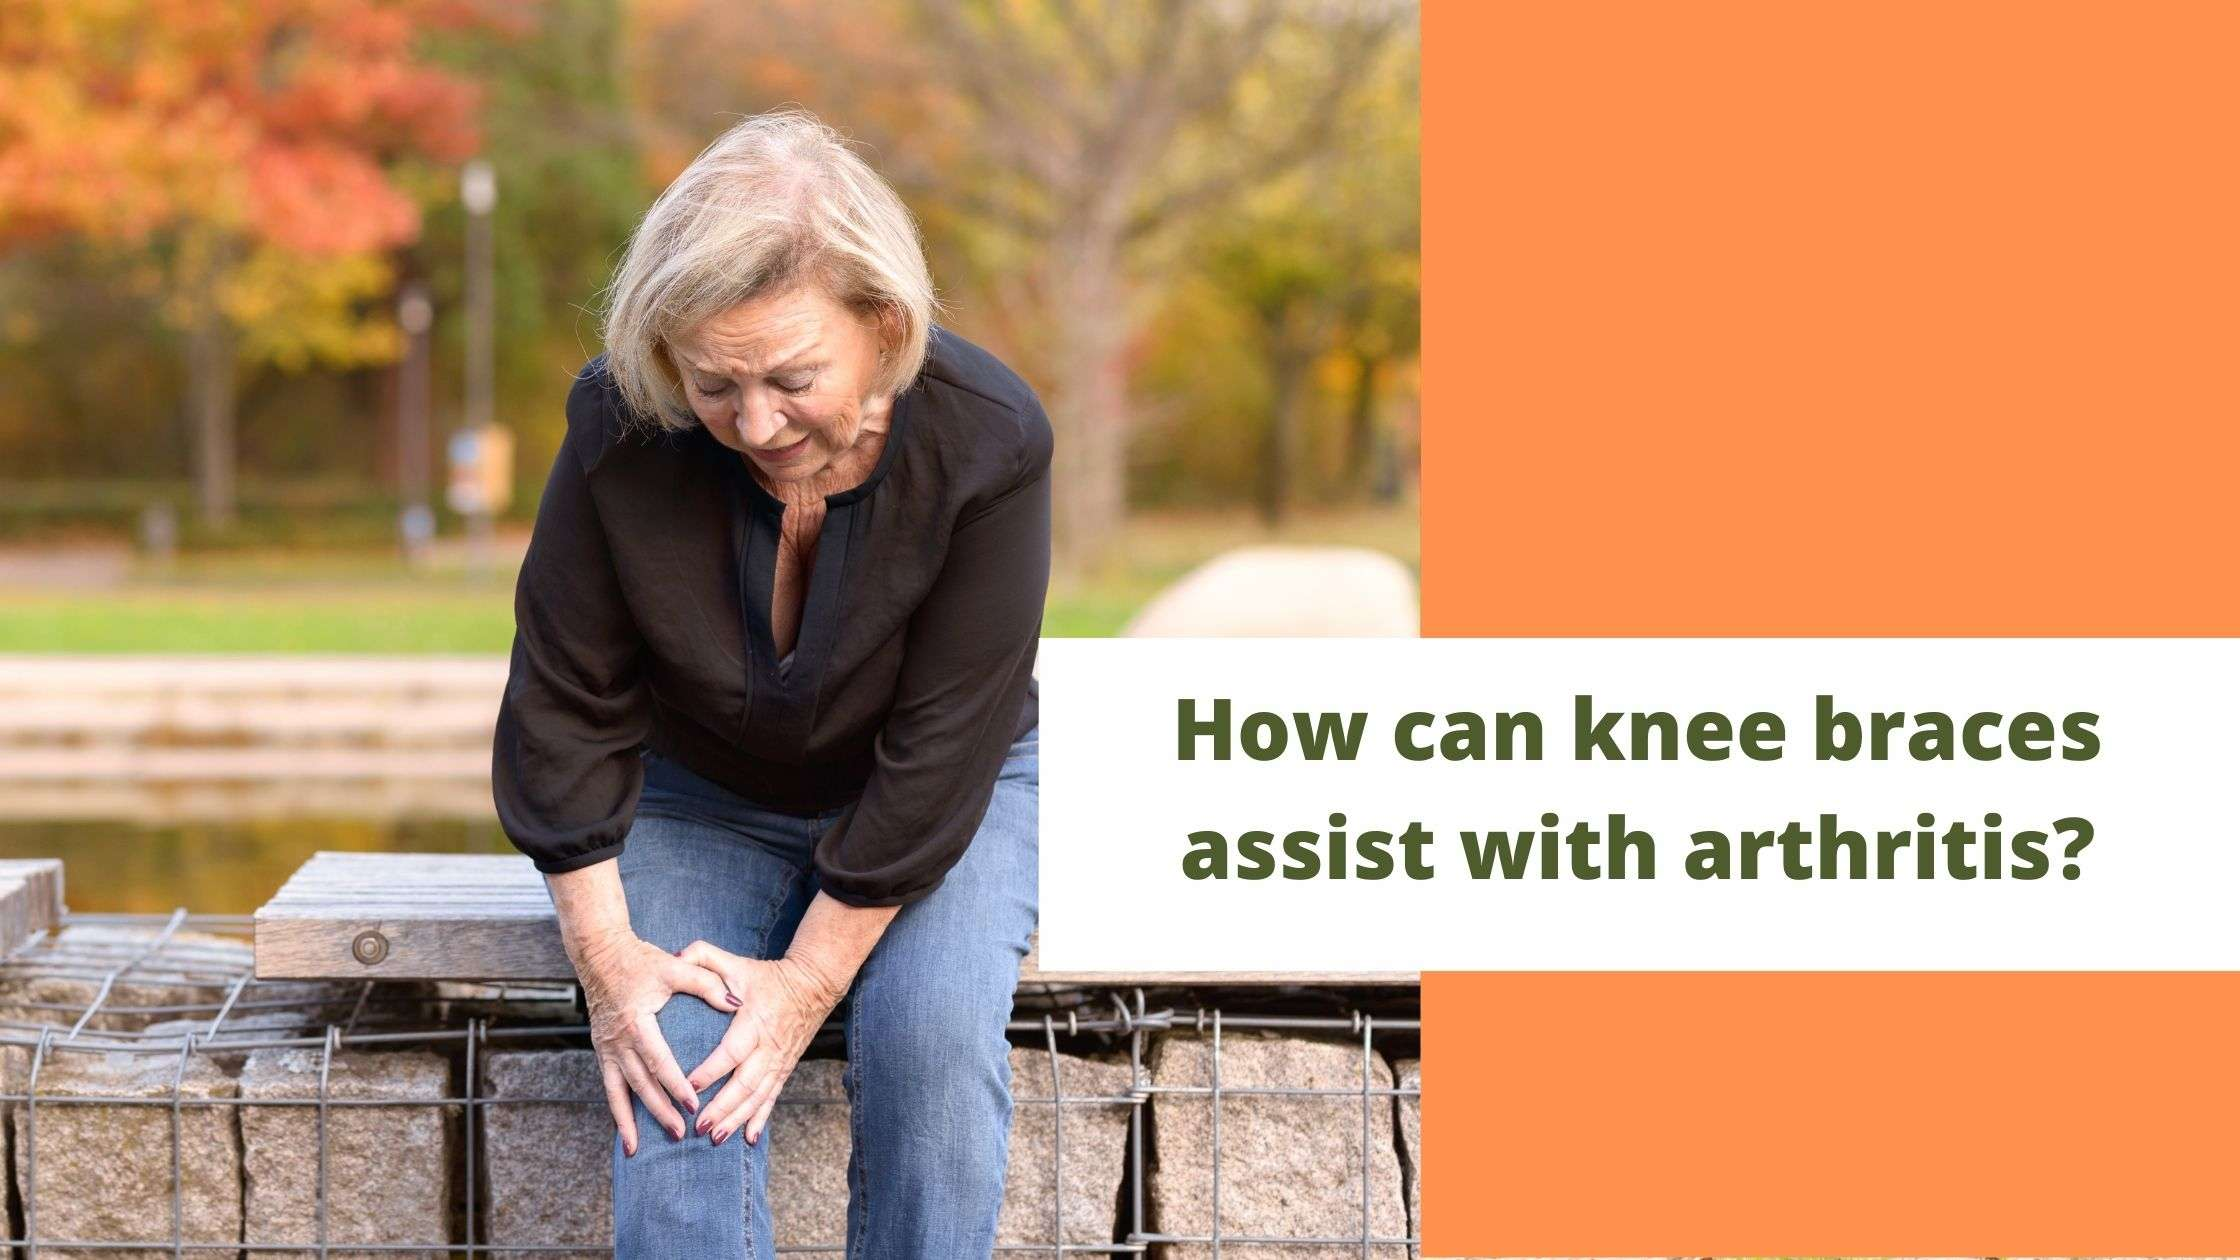 How can knee braces assist with arthritis?